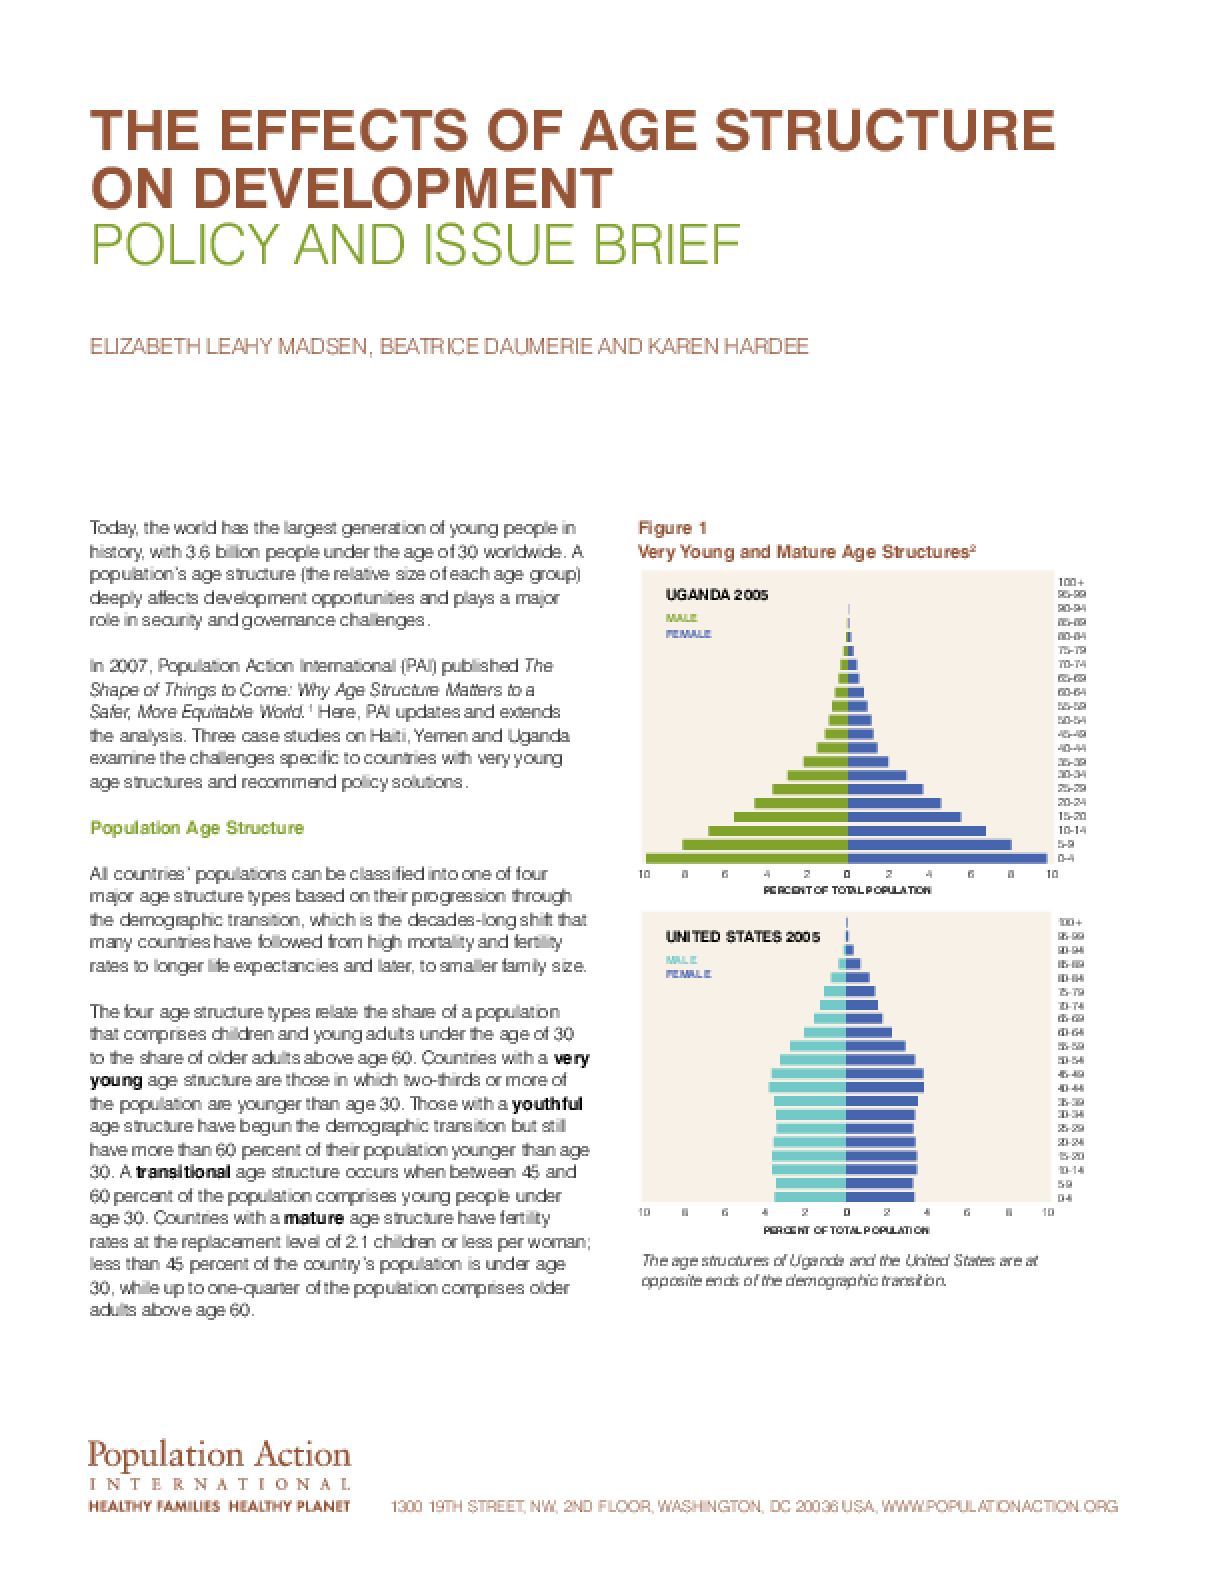 The Shape of Things to Come: The Effects of Age Structure on Development